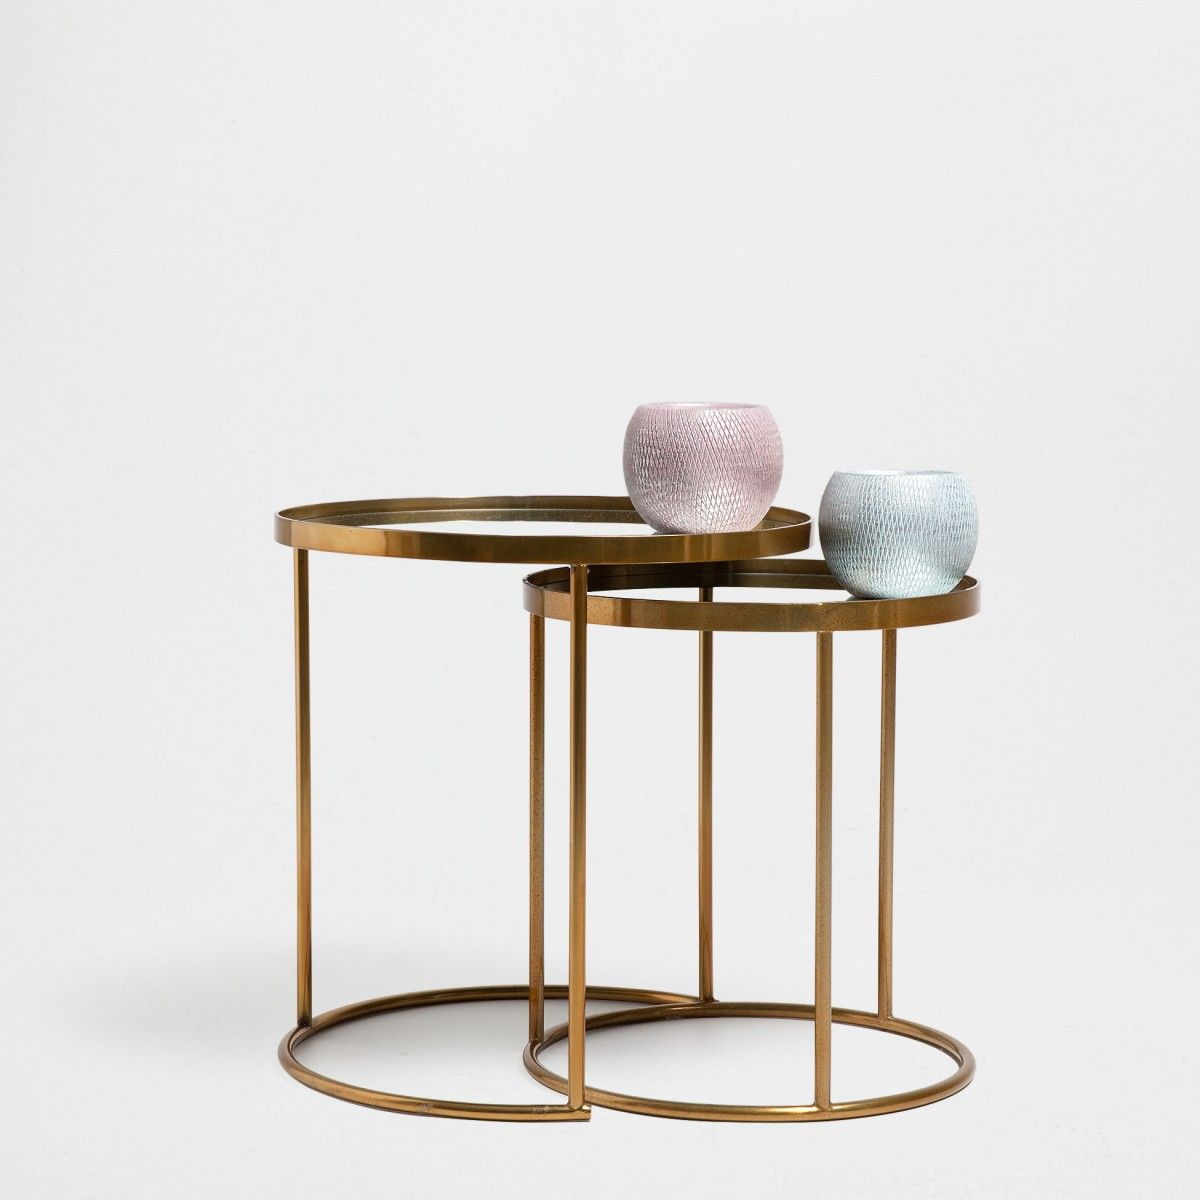 Runder Teppich Zara Home The Top 10 Zara Home Finds According To Our Editor